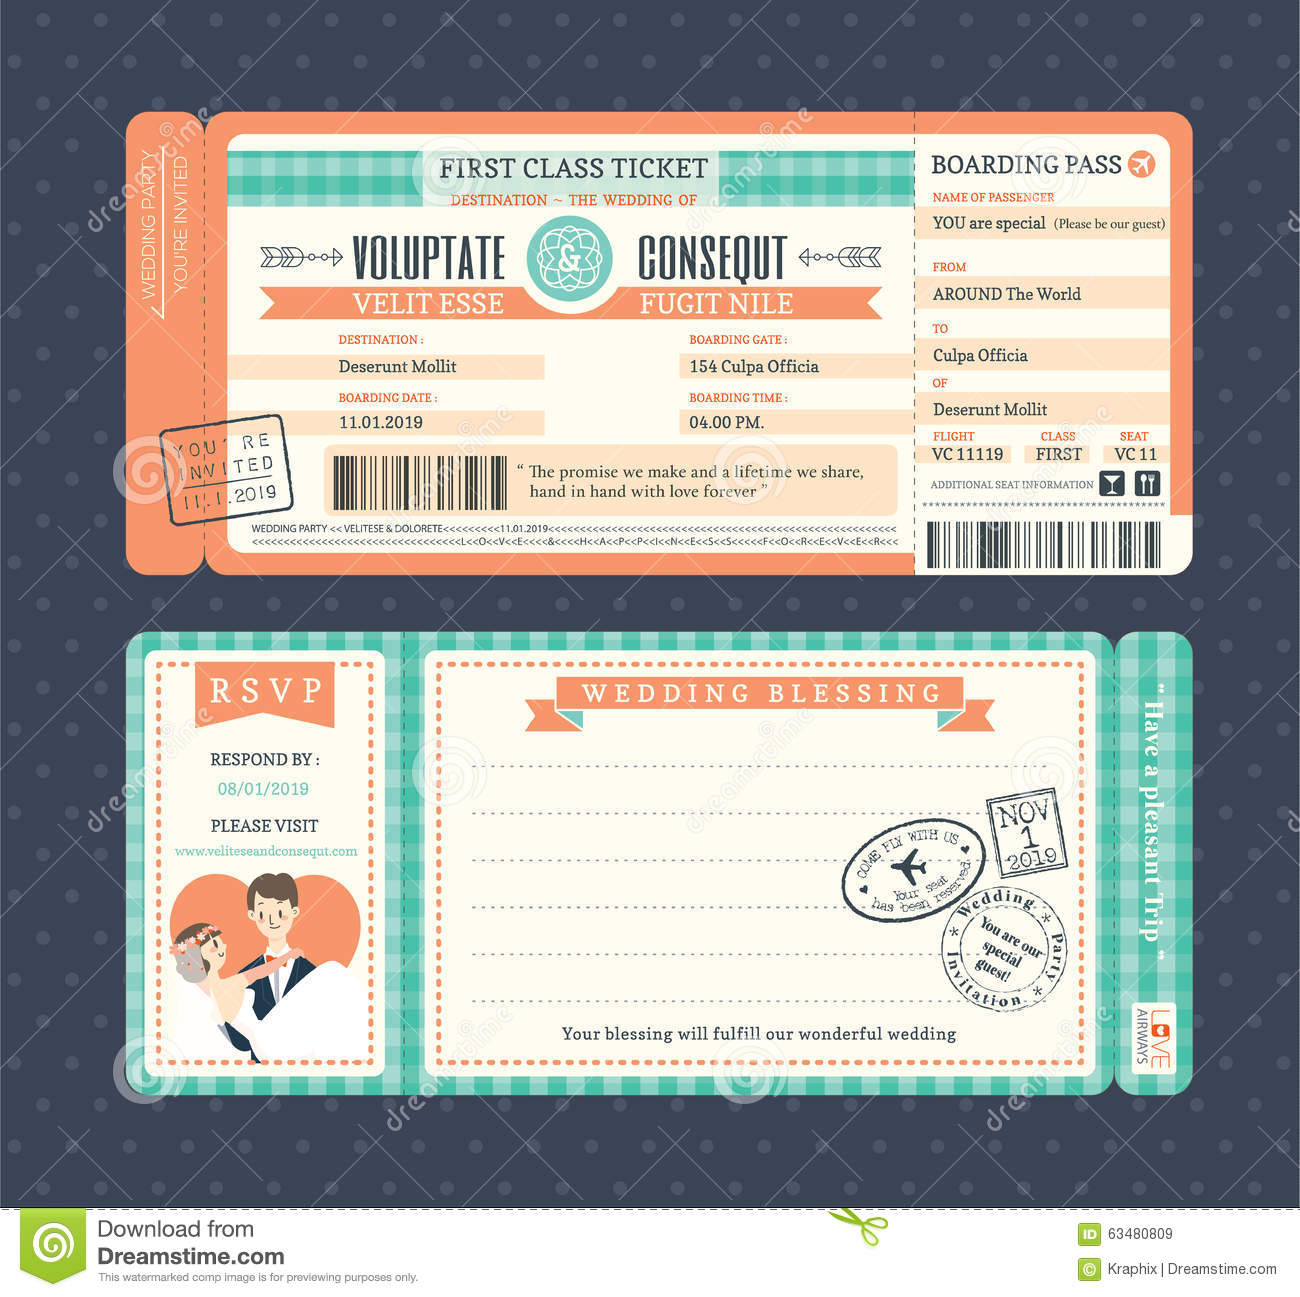 Pastel Retro Boarding Pass Wedding Invitation Template